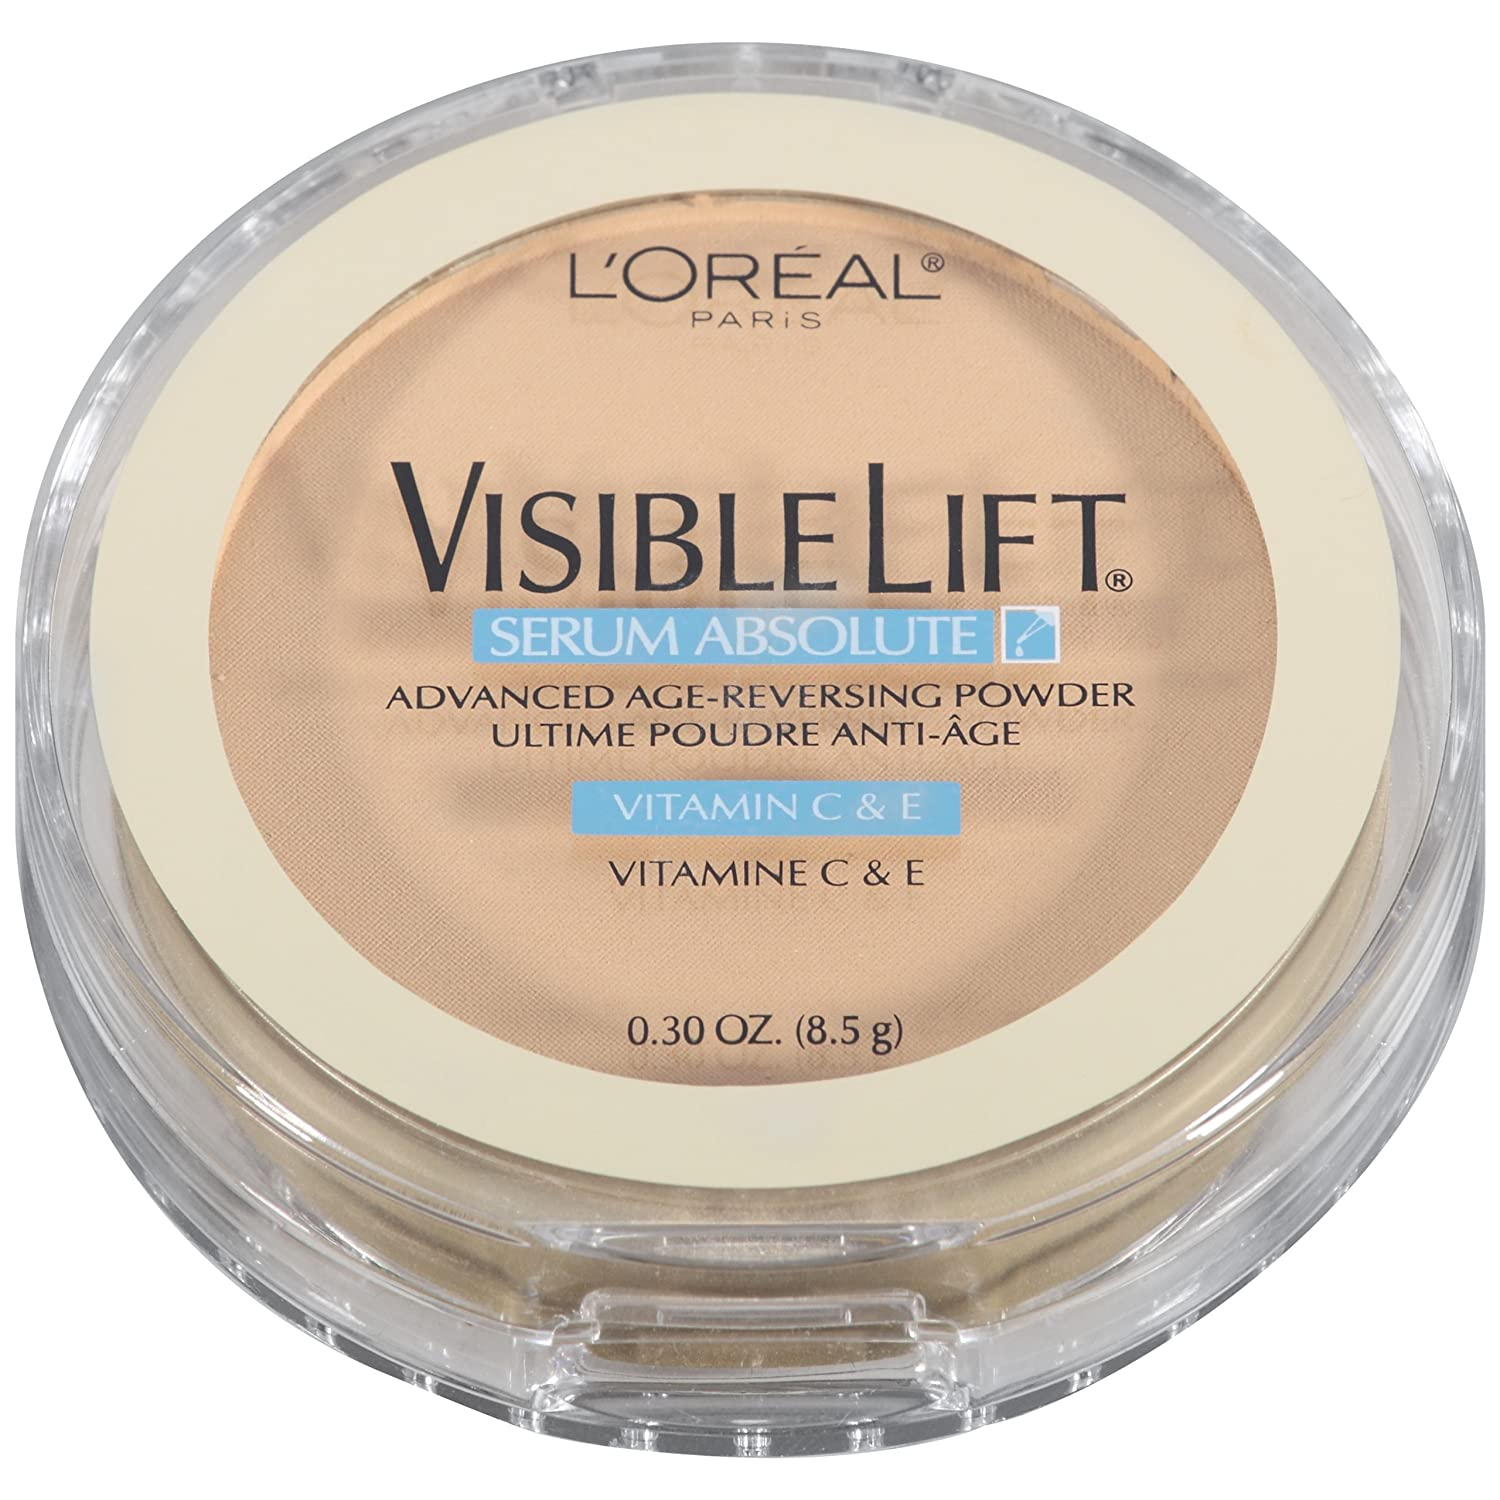 L'Oreal Paris Visible Lift Serum Absolute Advanced Age-Reversing Powder, Medium, 0.28 Ounces